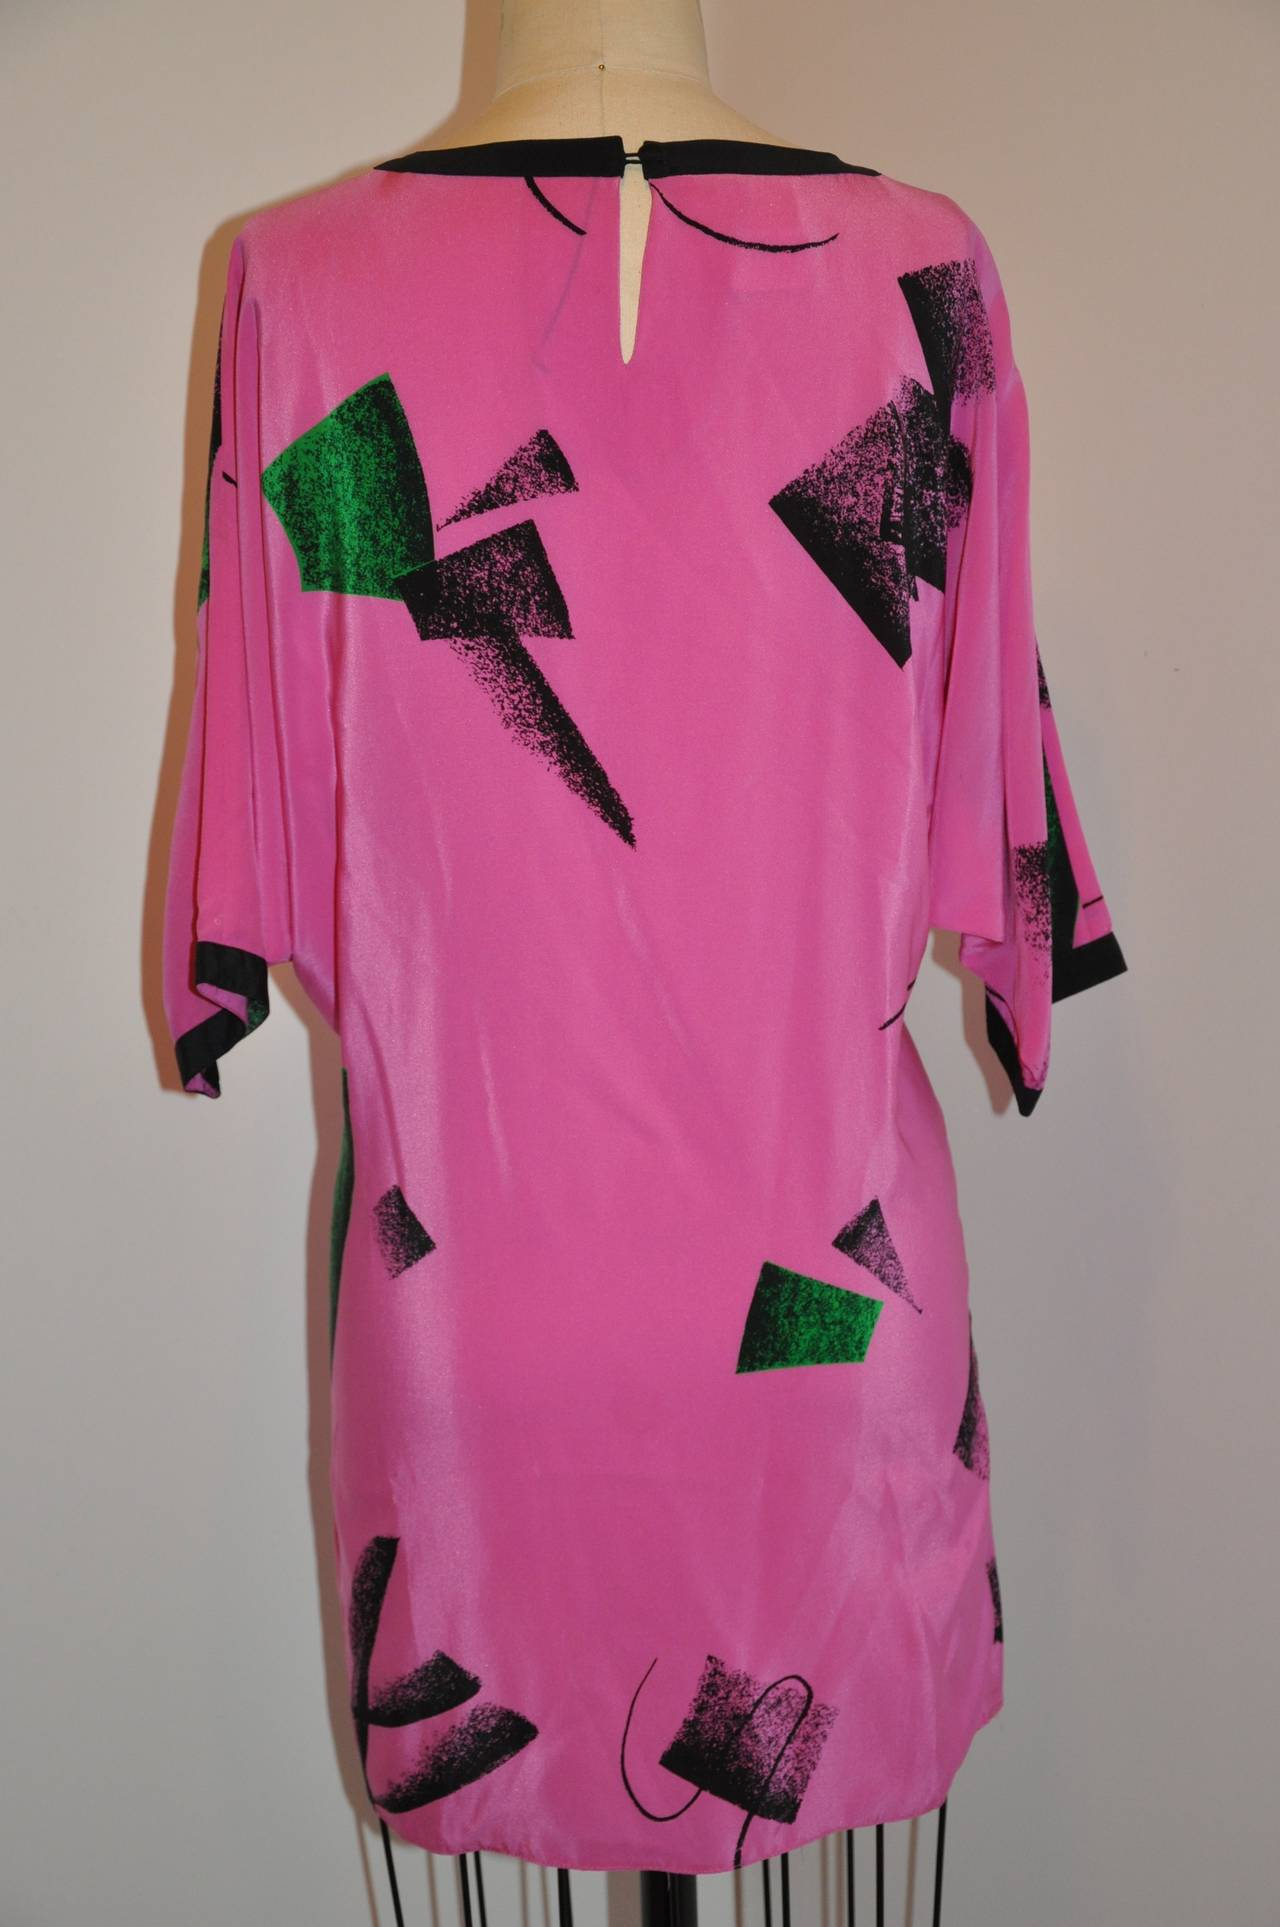 Flora Kung Bold fuchsia and Black abstract print silk tunic is accented with black along the neckline and sleeve's cuffs. The underarm circumference measures 46